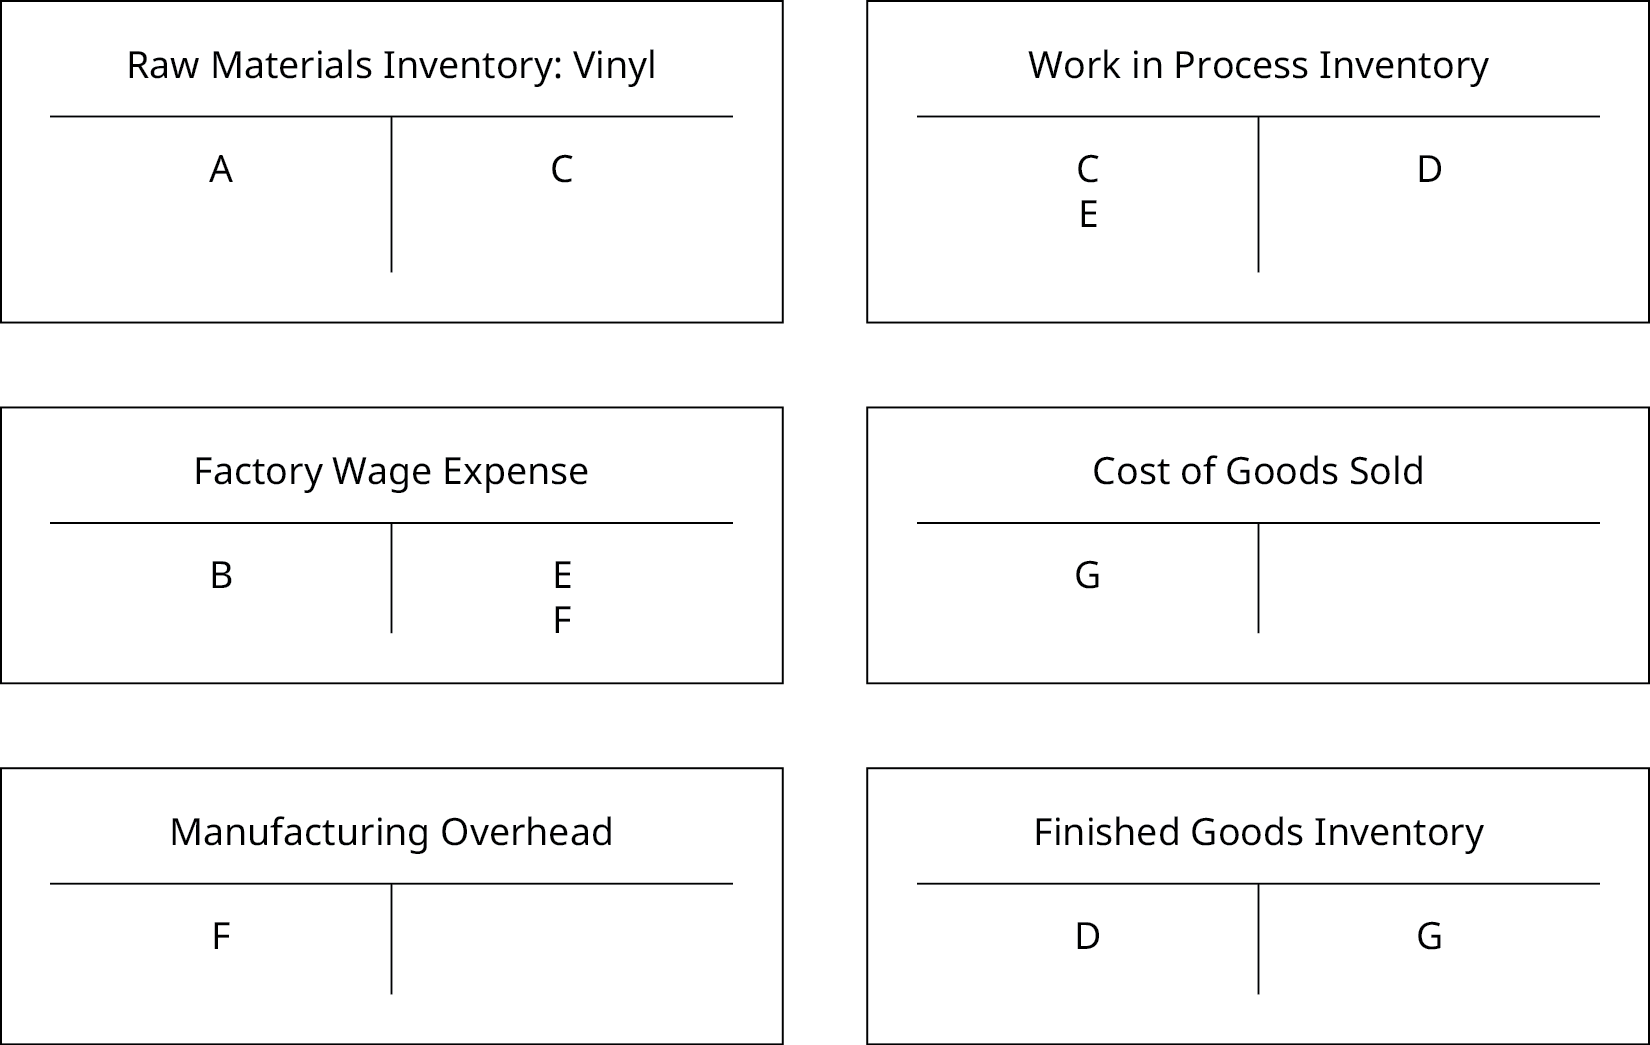 "The six T-Accounts: one each for ""Raw Materials Inventory: Vinyl"", ""Factory Wage Expense"", ""Manufacturing Overhead"", ""Work in Process Inventory"", ""Cost of Goods Sold"", and ""Finished Goods Inventory"" are now filled out. ""Raw Materials Inventory: Vinyl"" has an A on the debit side and a C on the credit side, ""Factory Wage Expense"" has a B on the debit side, and an E and F on the credit side, ""Manufacturing Overhead"" has an F on the debit side, ""Work in Process Inventory"" has a C and E on the debit side and a D on the credit side, ""Cost of Goods Sold"" has a G on the debit side, and ""Finished Goods Inventory"" has a D on the debit and G on the credit side."